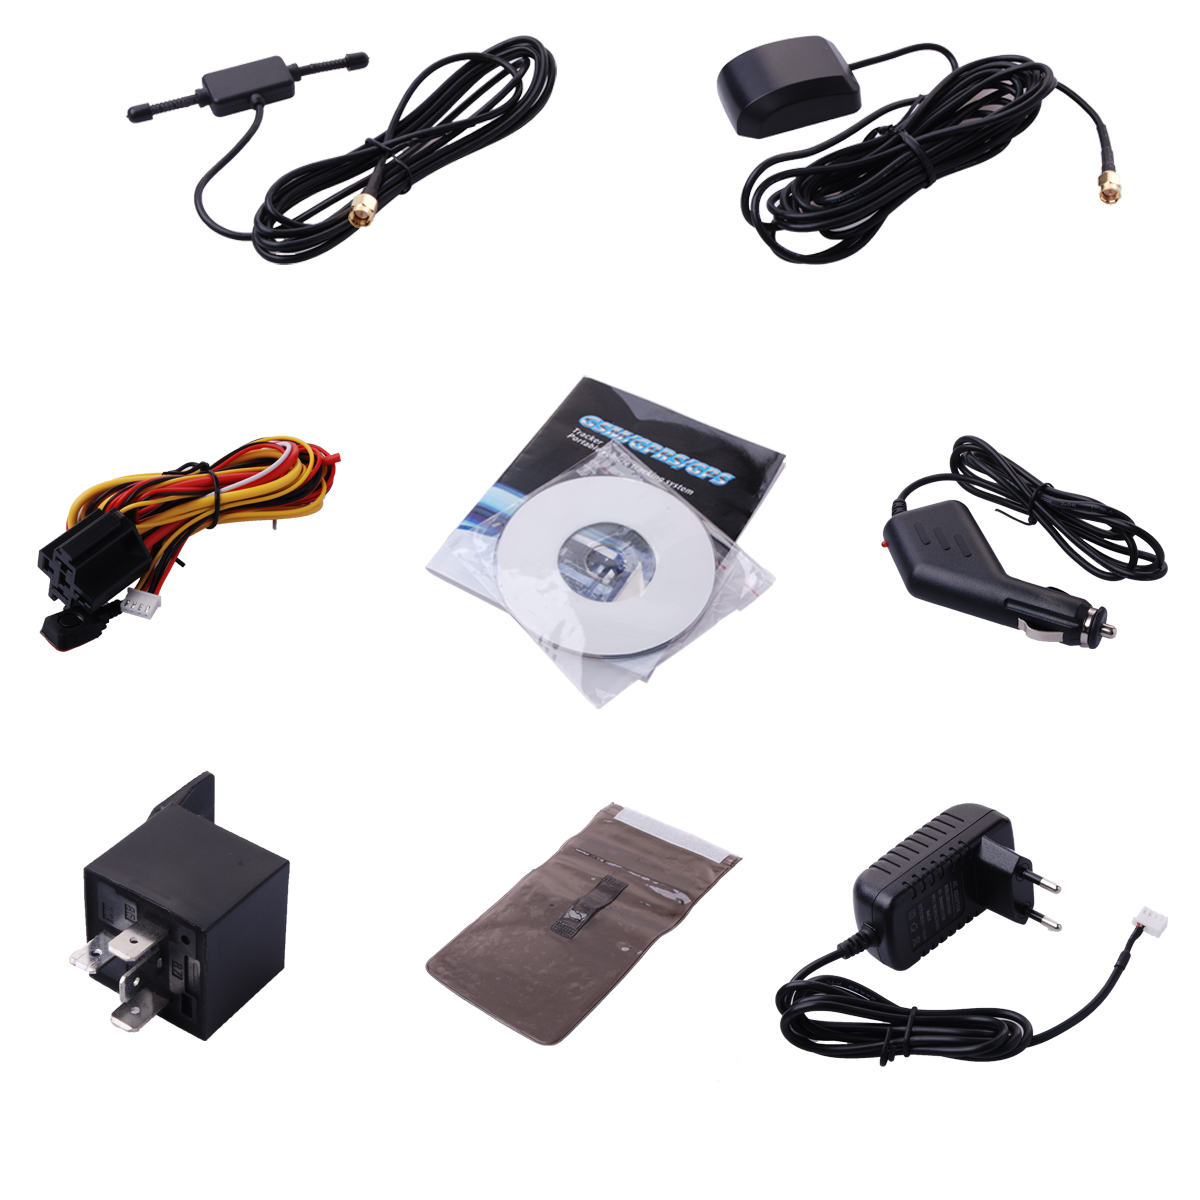 gprs gsm gps tracker system auto kfz tracking device. Black Bedroom Furniture Sets. Home Design Ideas